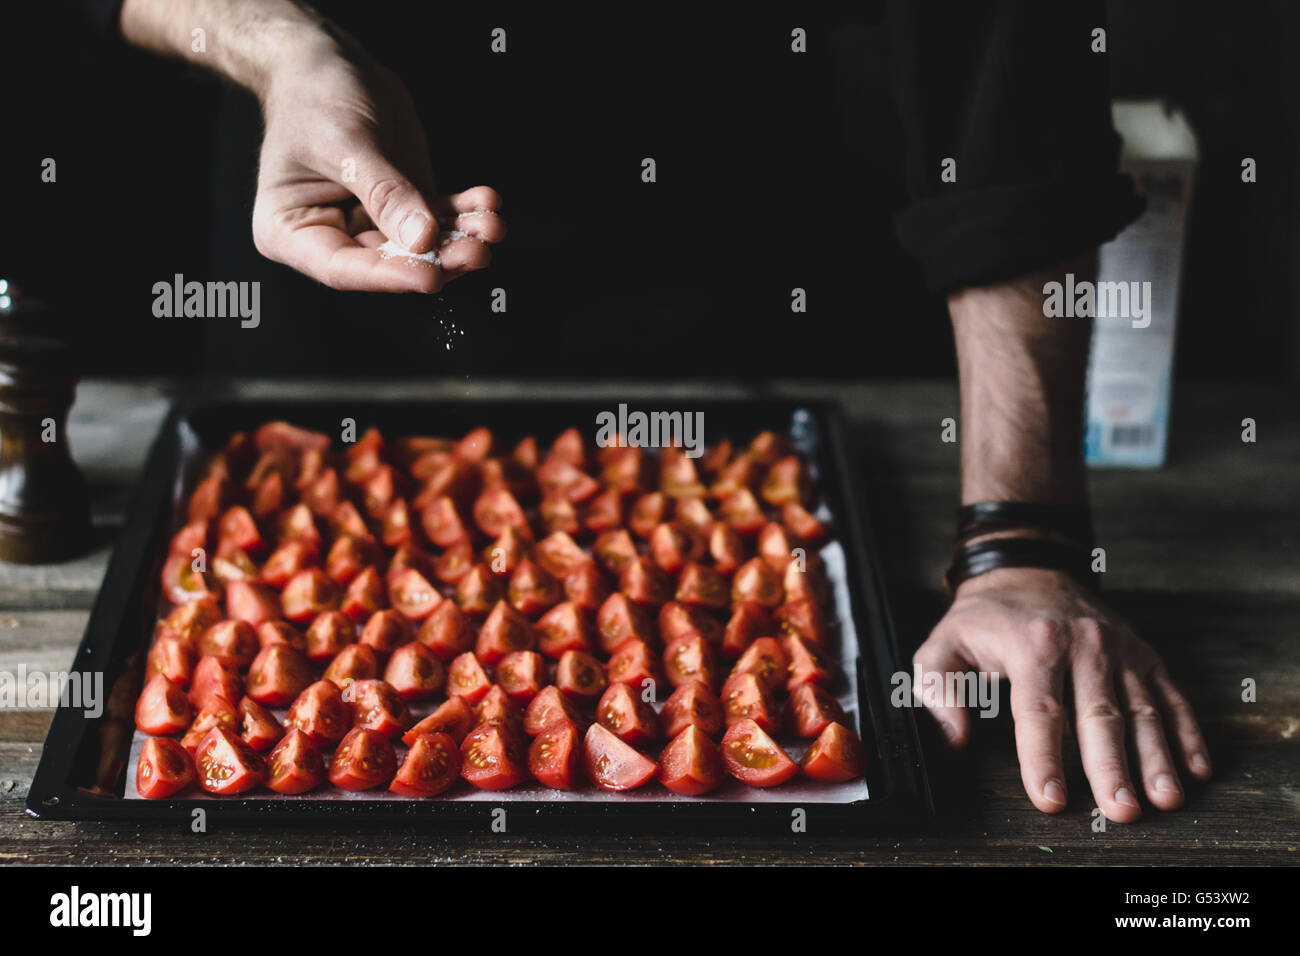 Male chef salting down tomatoes on a tray. Preparing cherry tomatoes for roasting - Stock Image